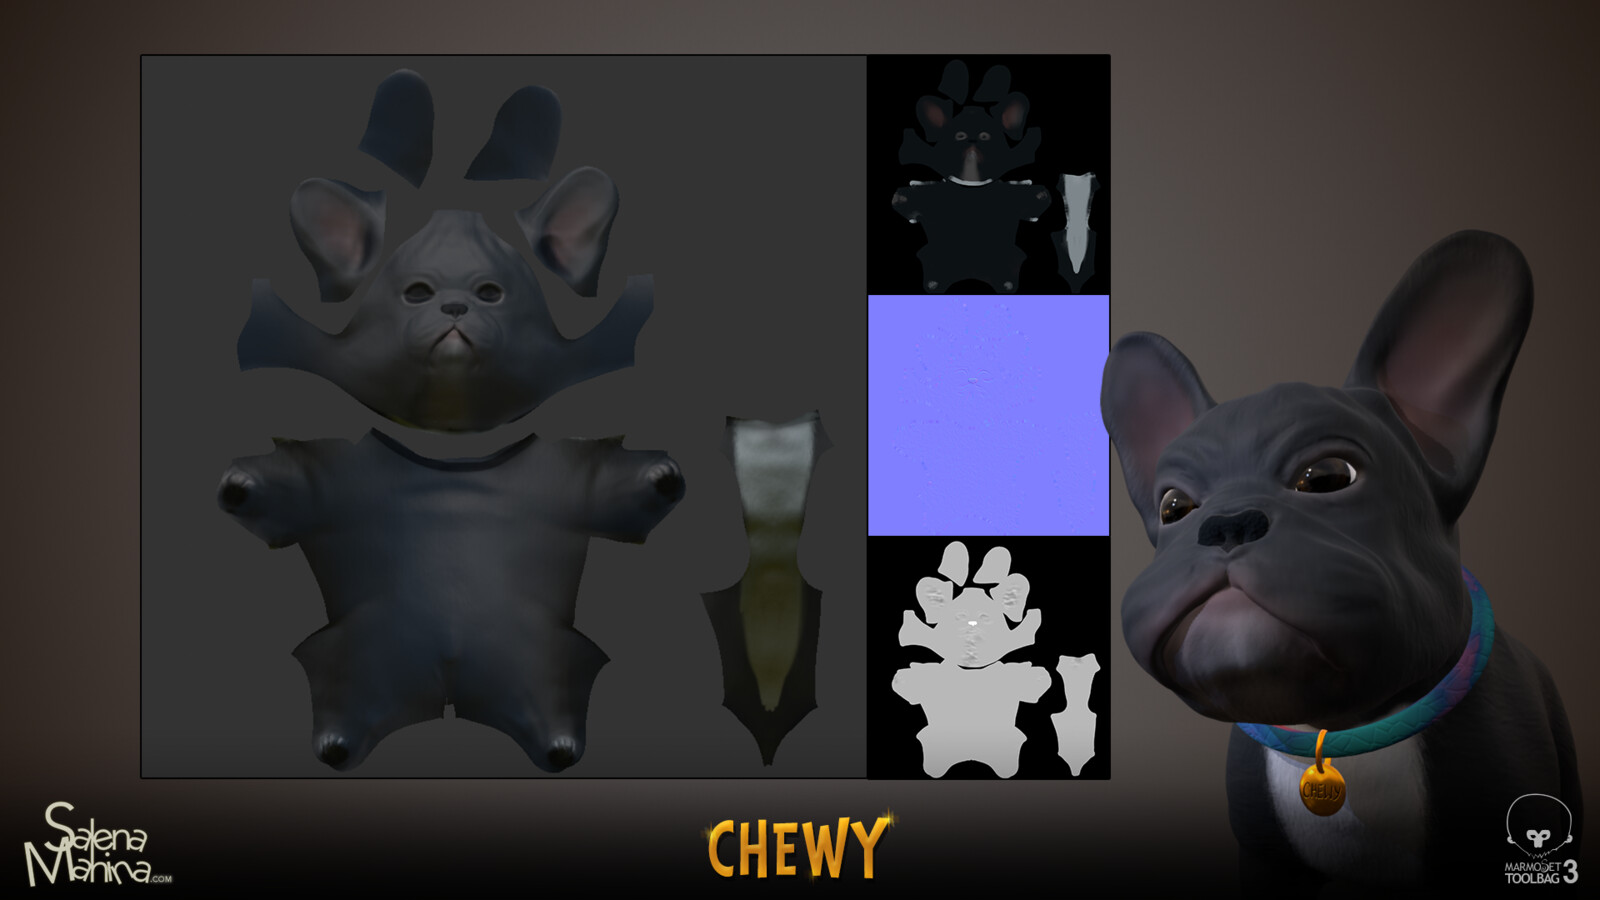 Chewy textures (Albedo, normals, roughness)